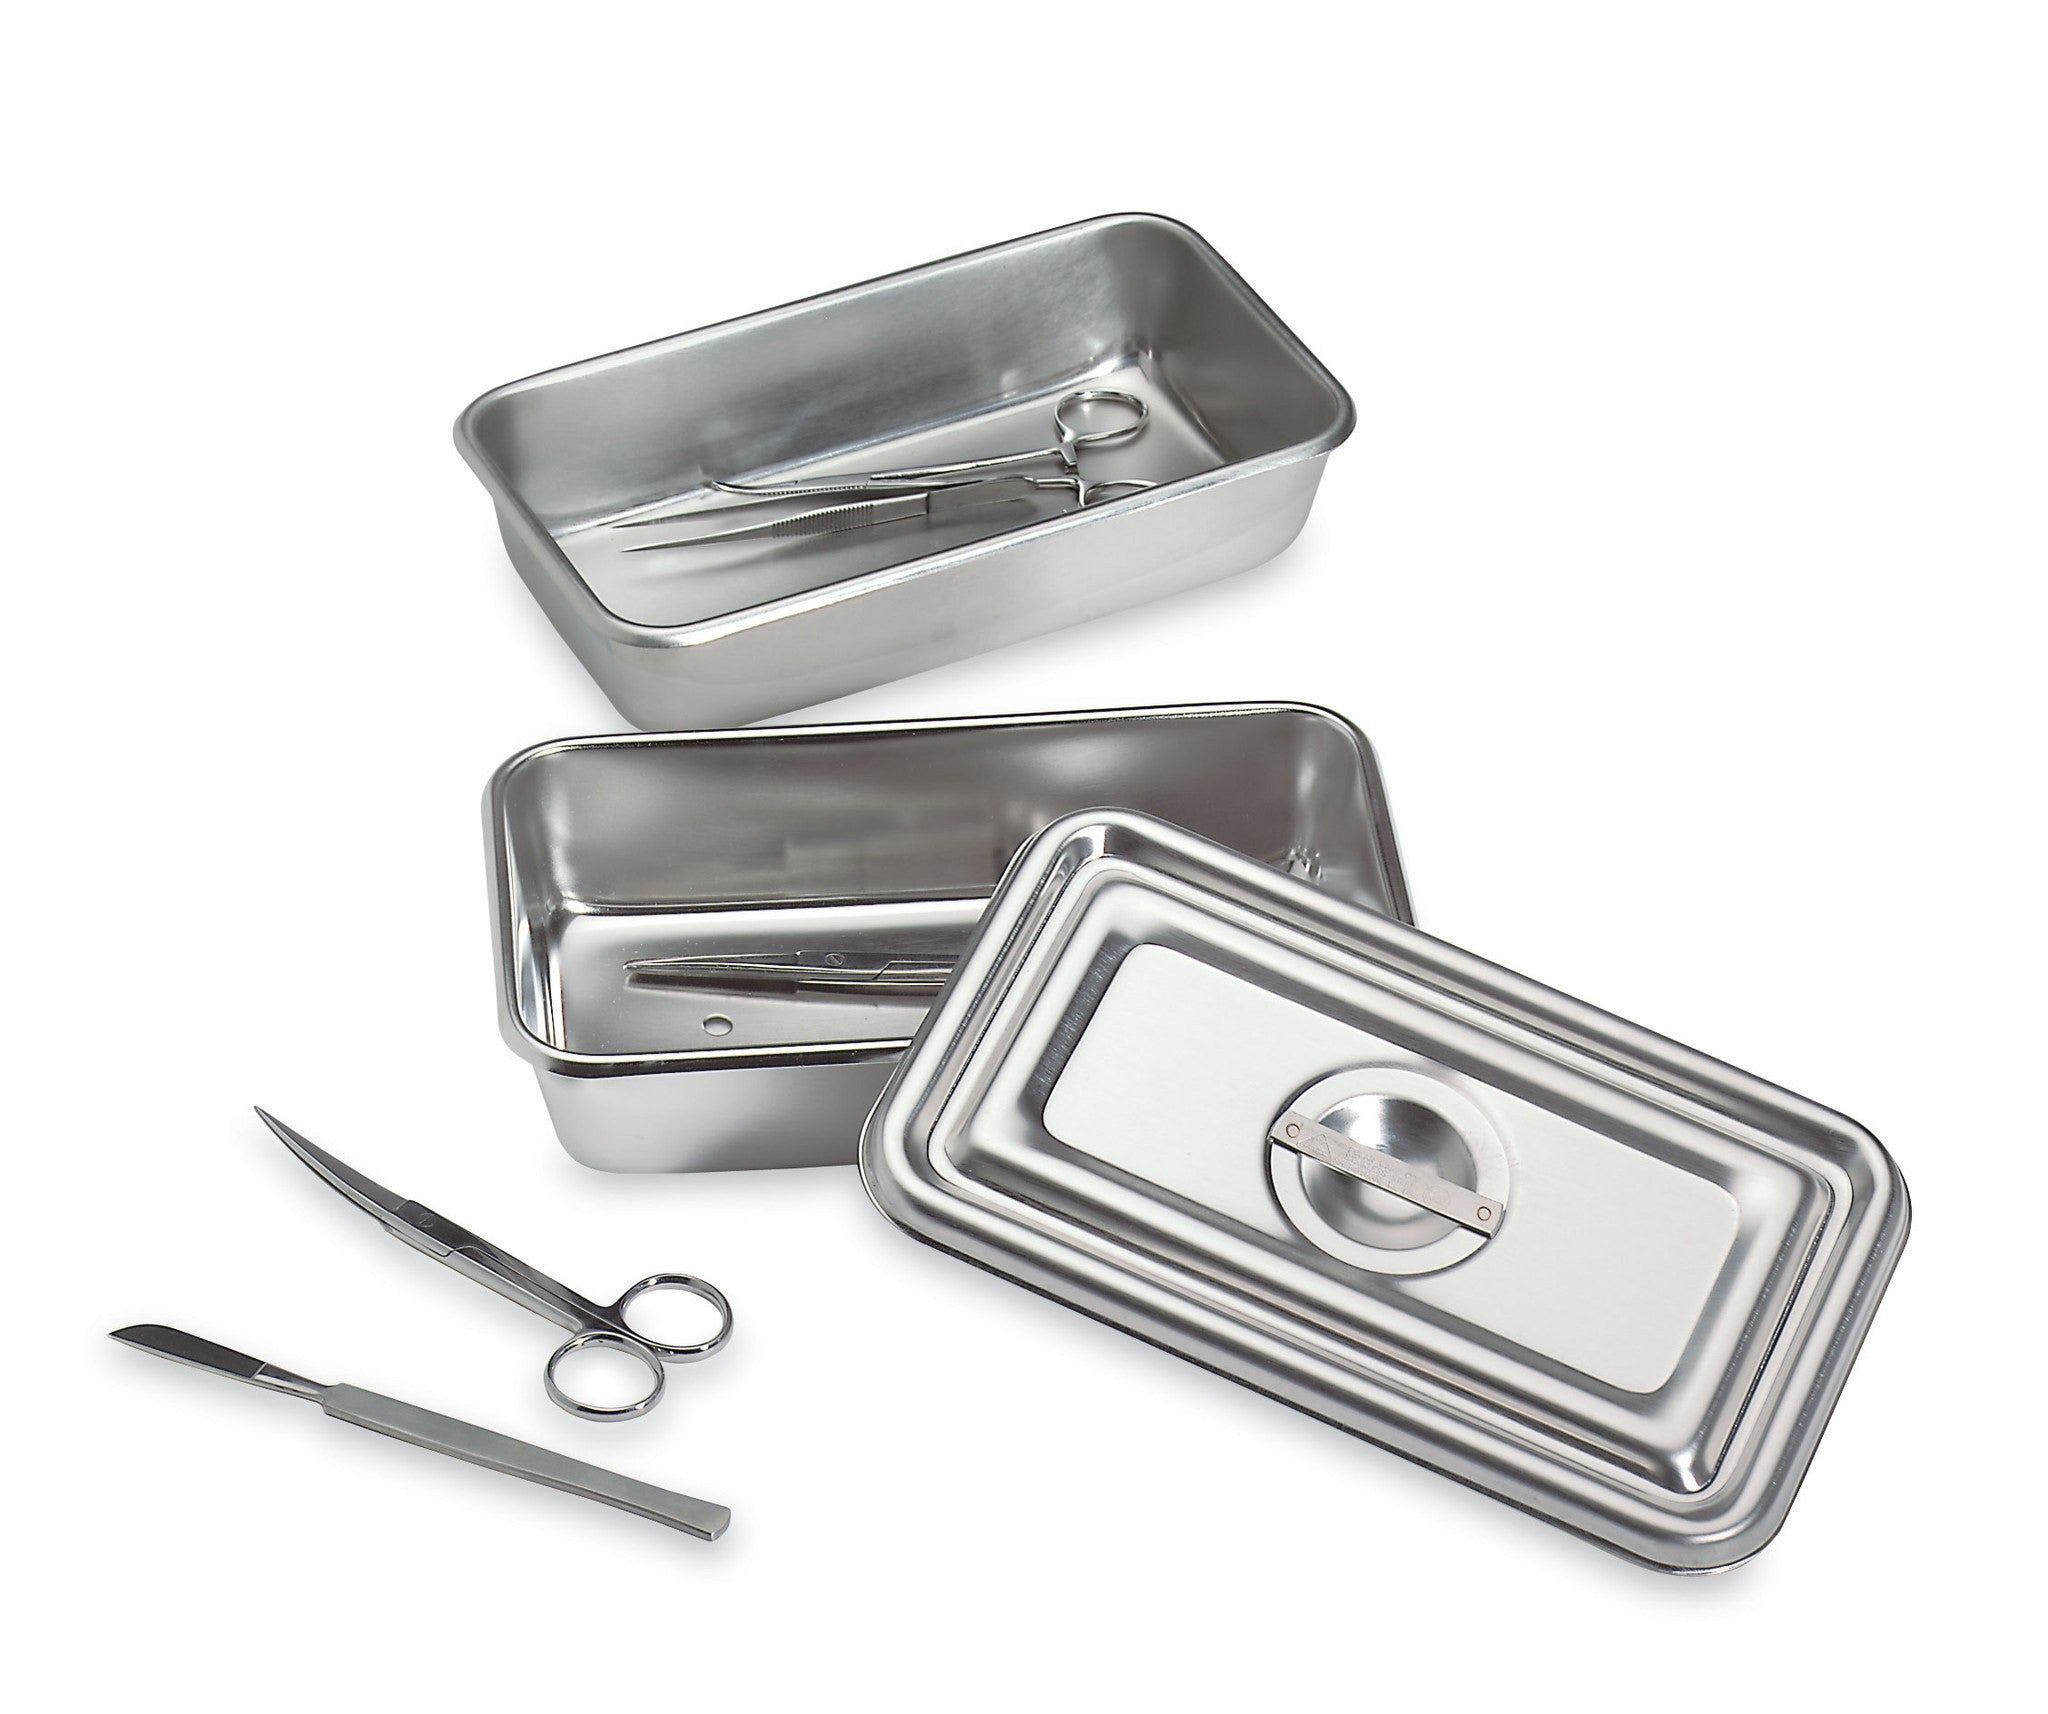 Buy Stainless Steel Instrument Tray with Lid by Tech-Med Services online | Mountainside Medical Equipment